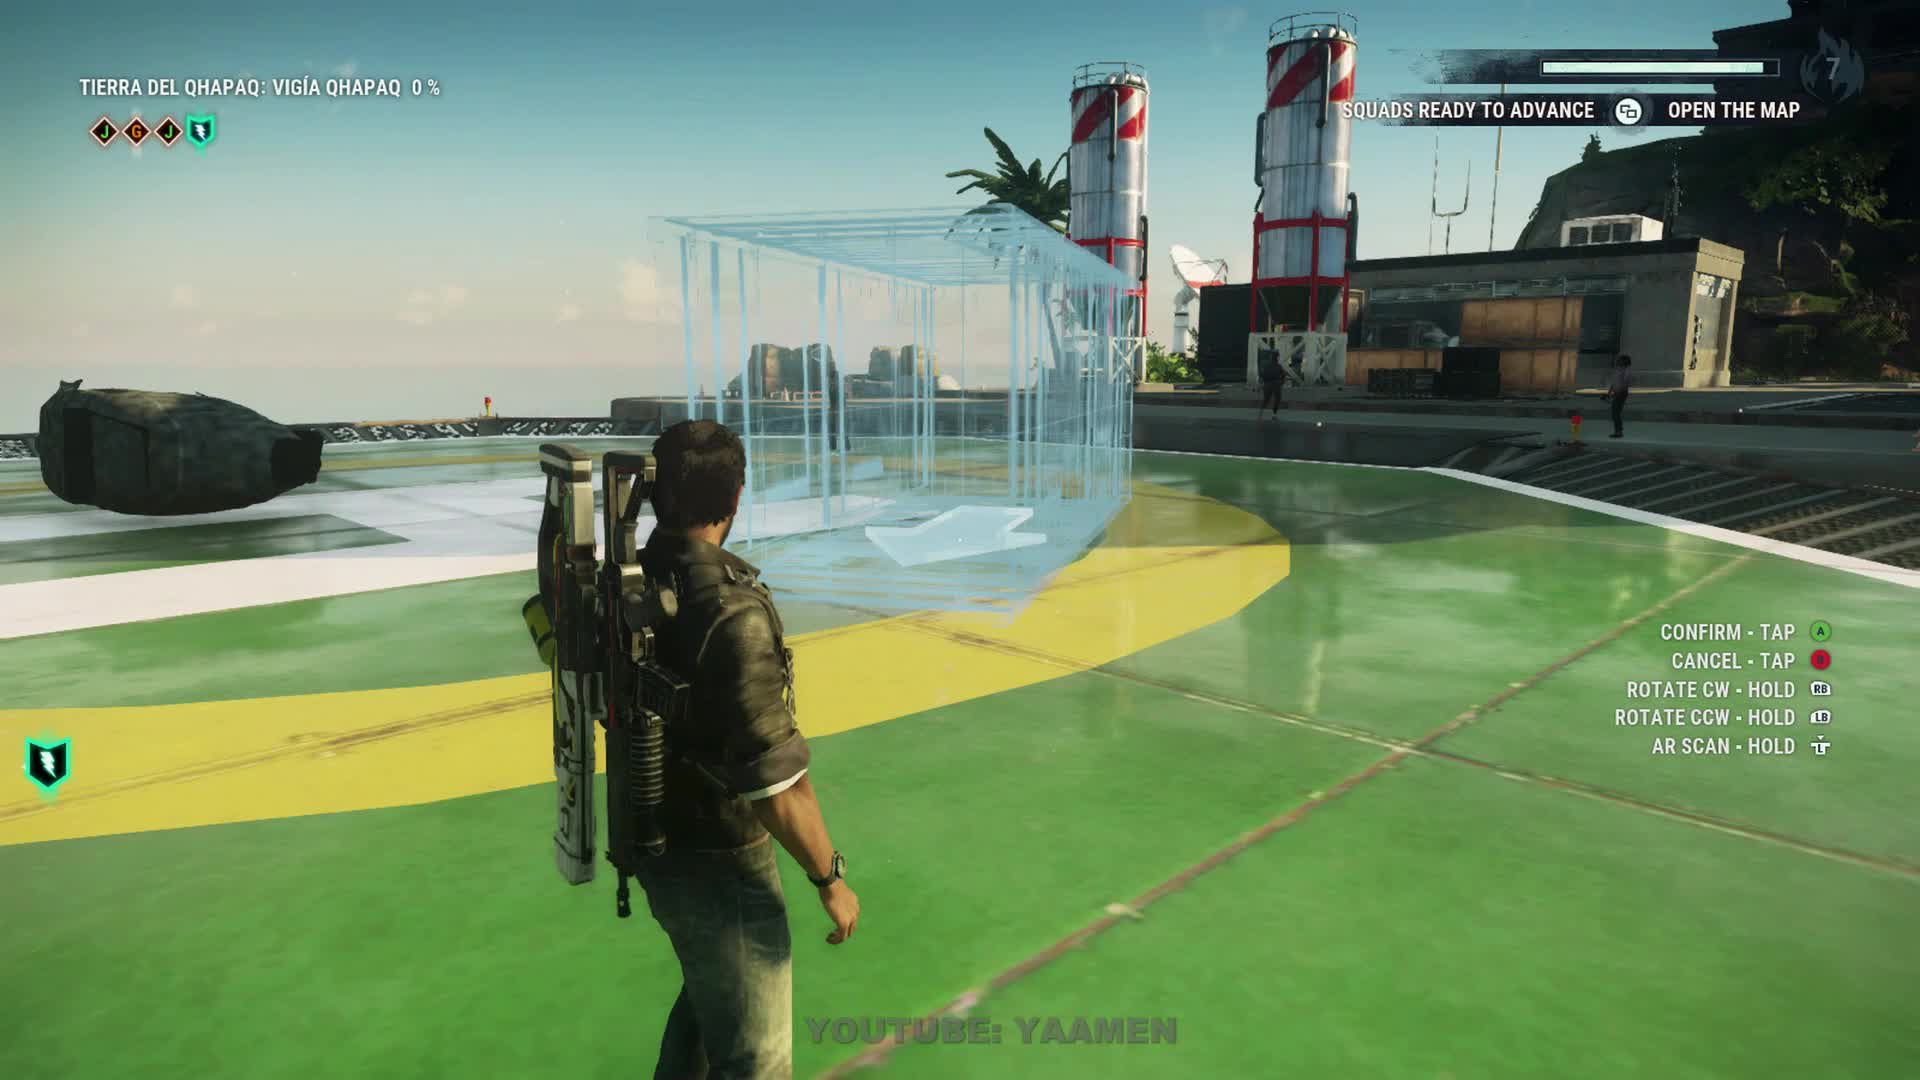 air drop, avalanche, bug, glitch, just cause 4, plane, square enix, JUST CAUSE 4 - GO FOR A SPIN GIFs